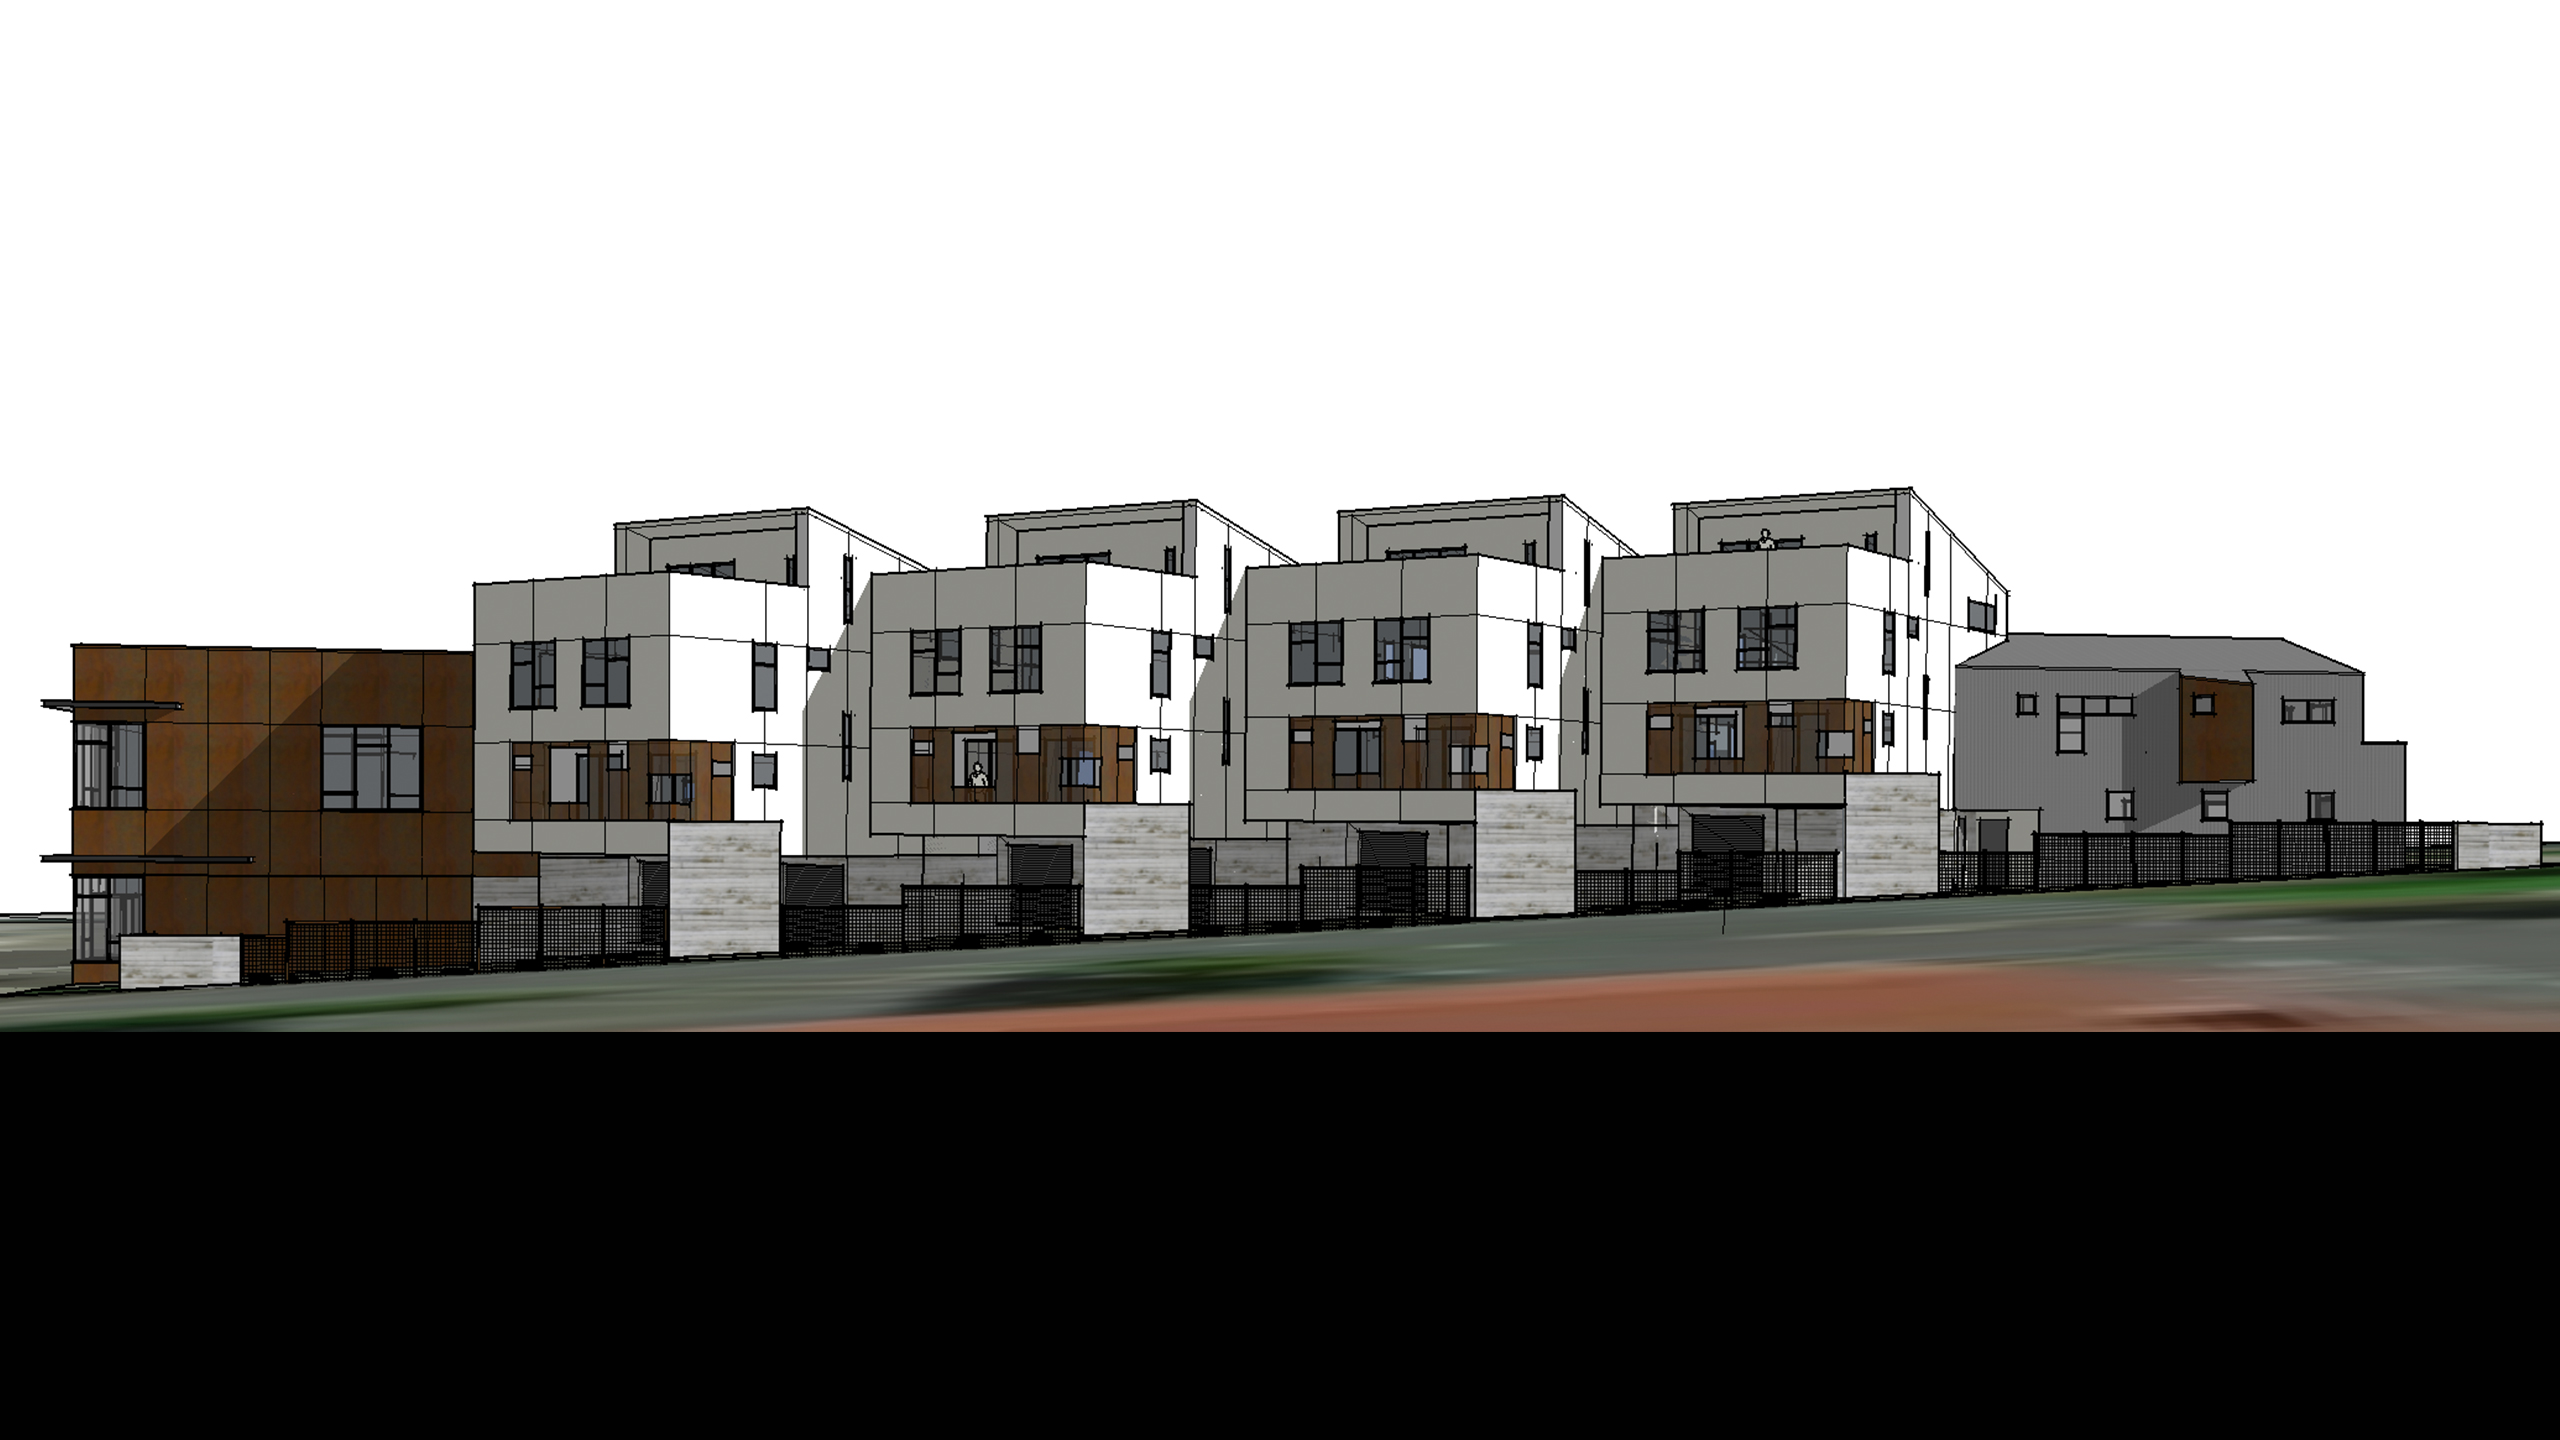 Net-Zero-Multifamily-Sonoma-County-Liberty-Lofts-10-units-exterior-view-with-corten-steel-siding